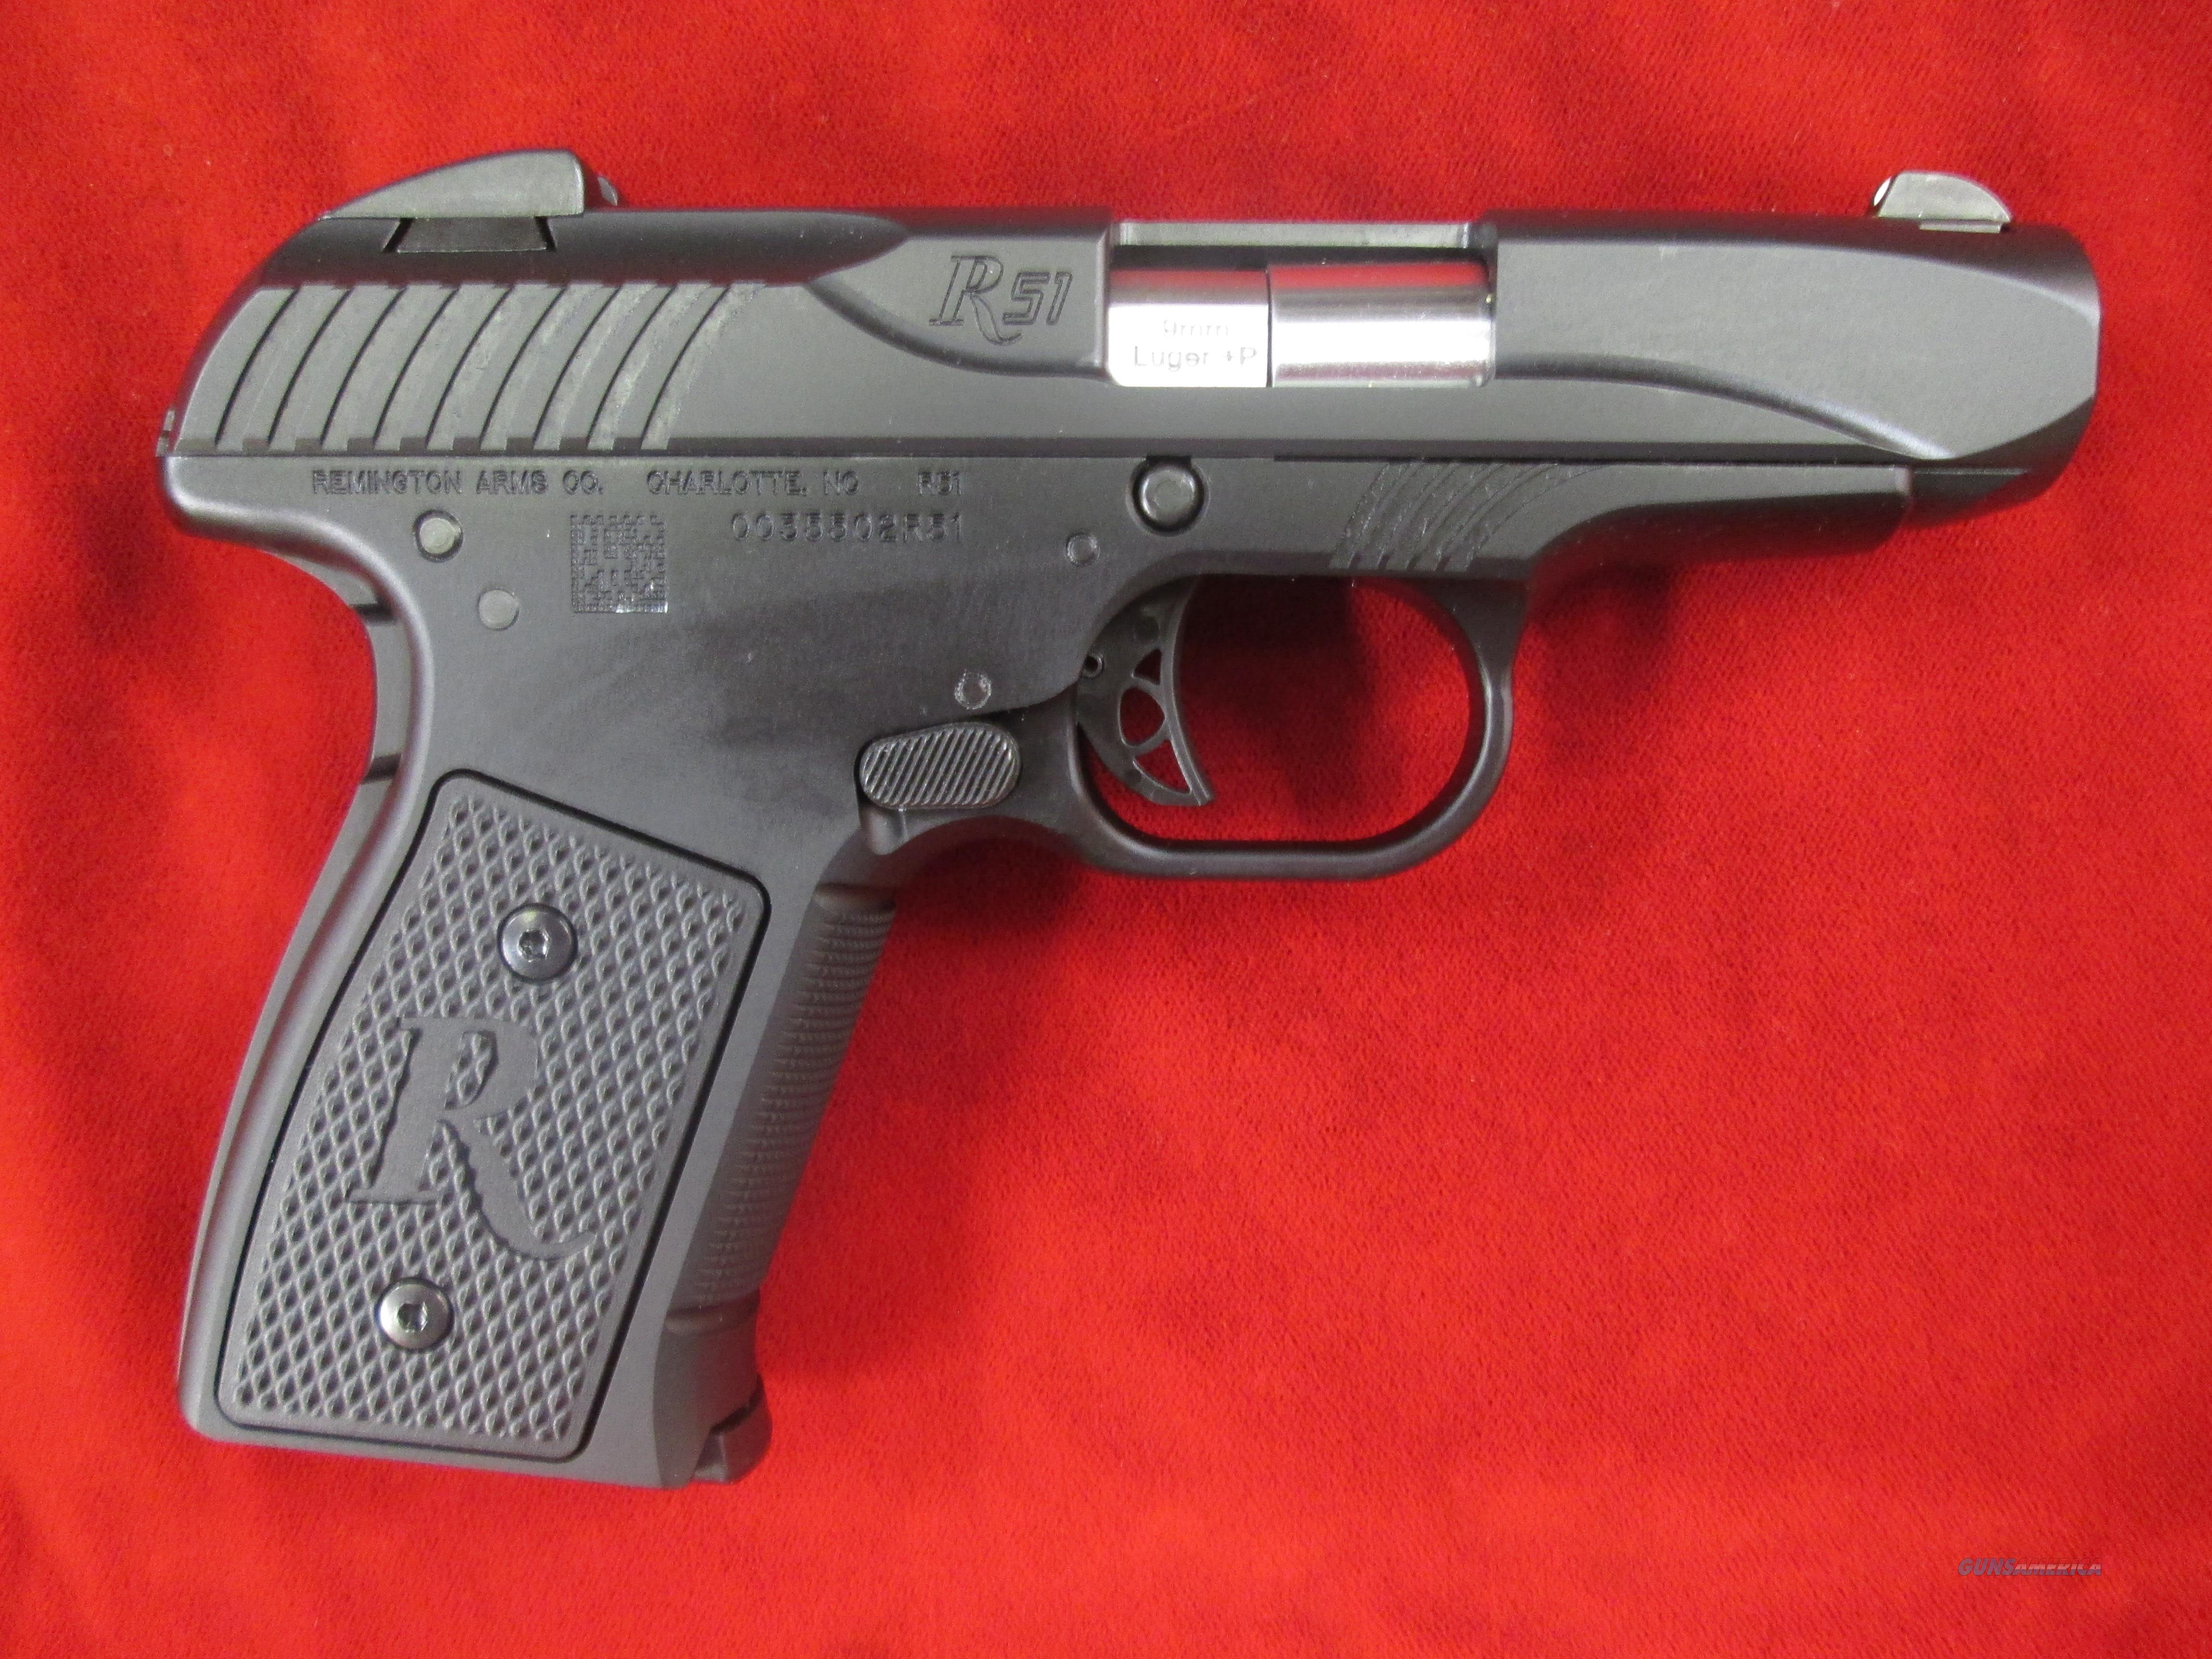 REMINGTON R-51 SEMI AUTO PISTOL 9MM+P RATED NEW   (96430)    Guns > Pistols > Remington Pistols - Modern > 1911